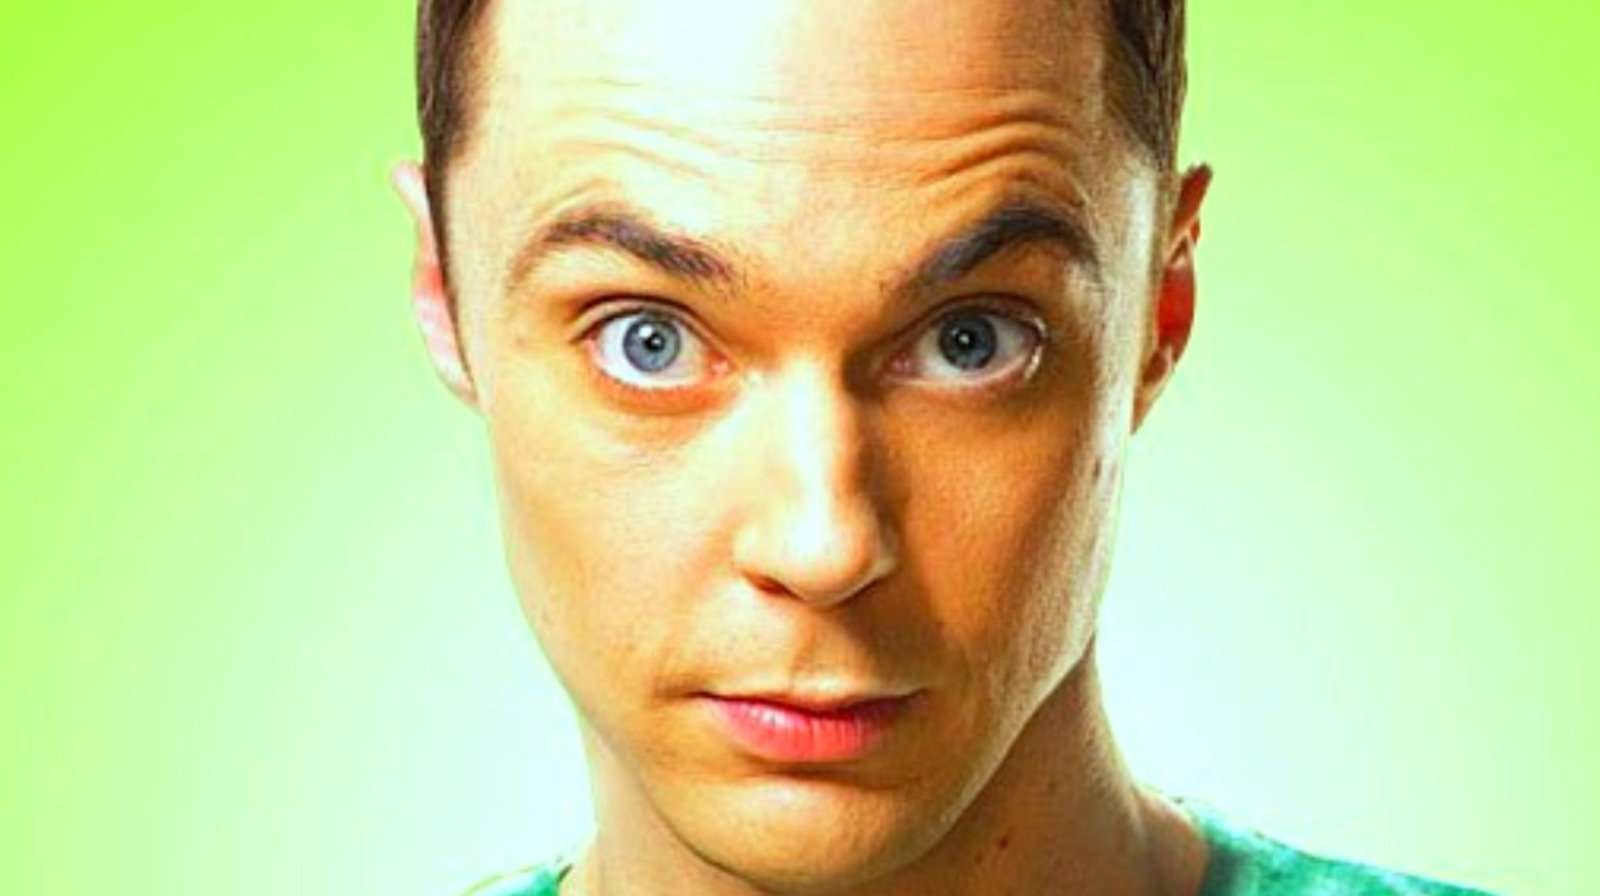 The Sheldon Scene The Big Bang Theory Fans Never Got To See